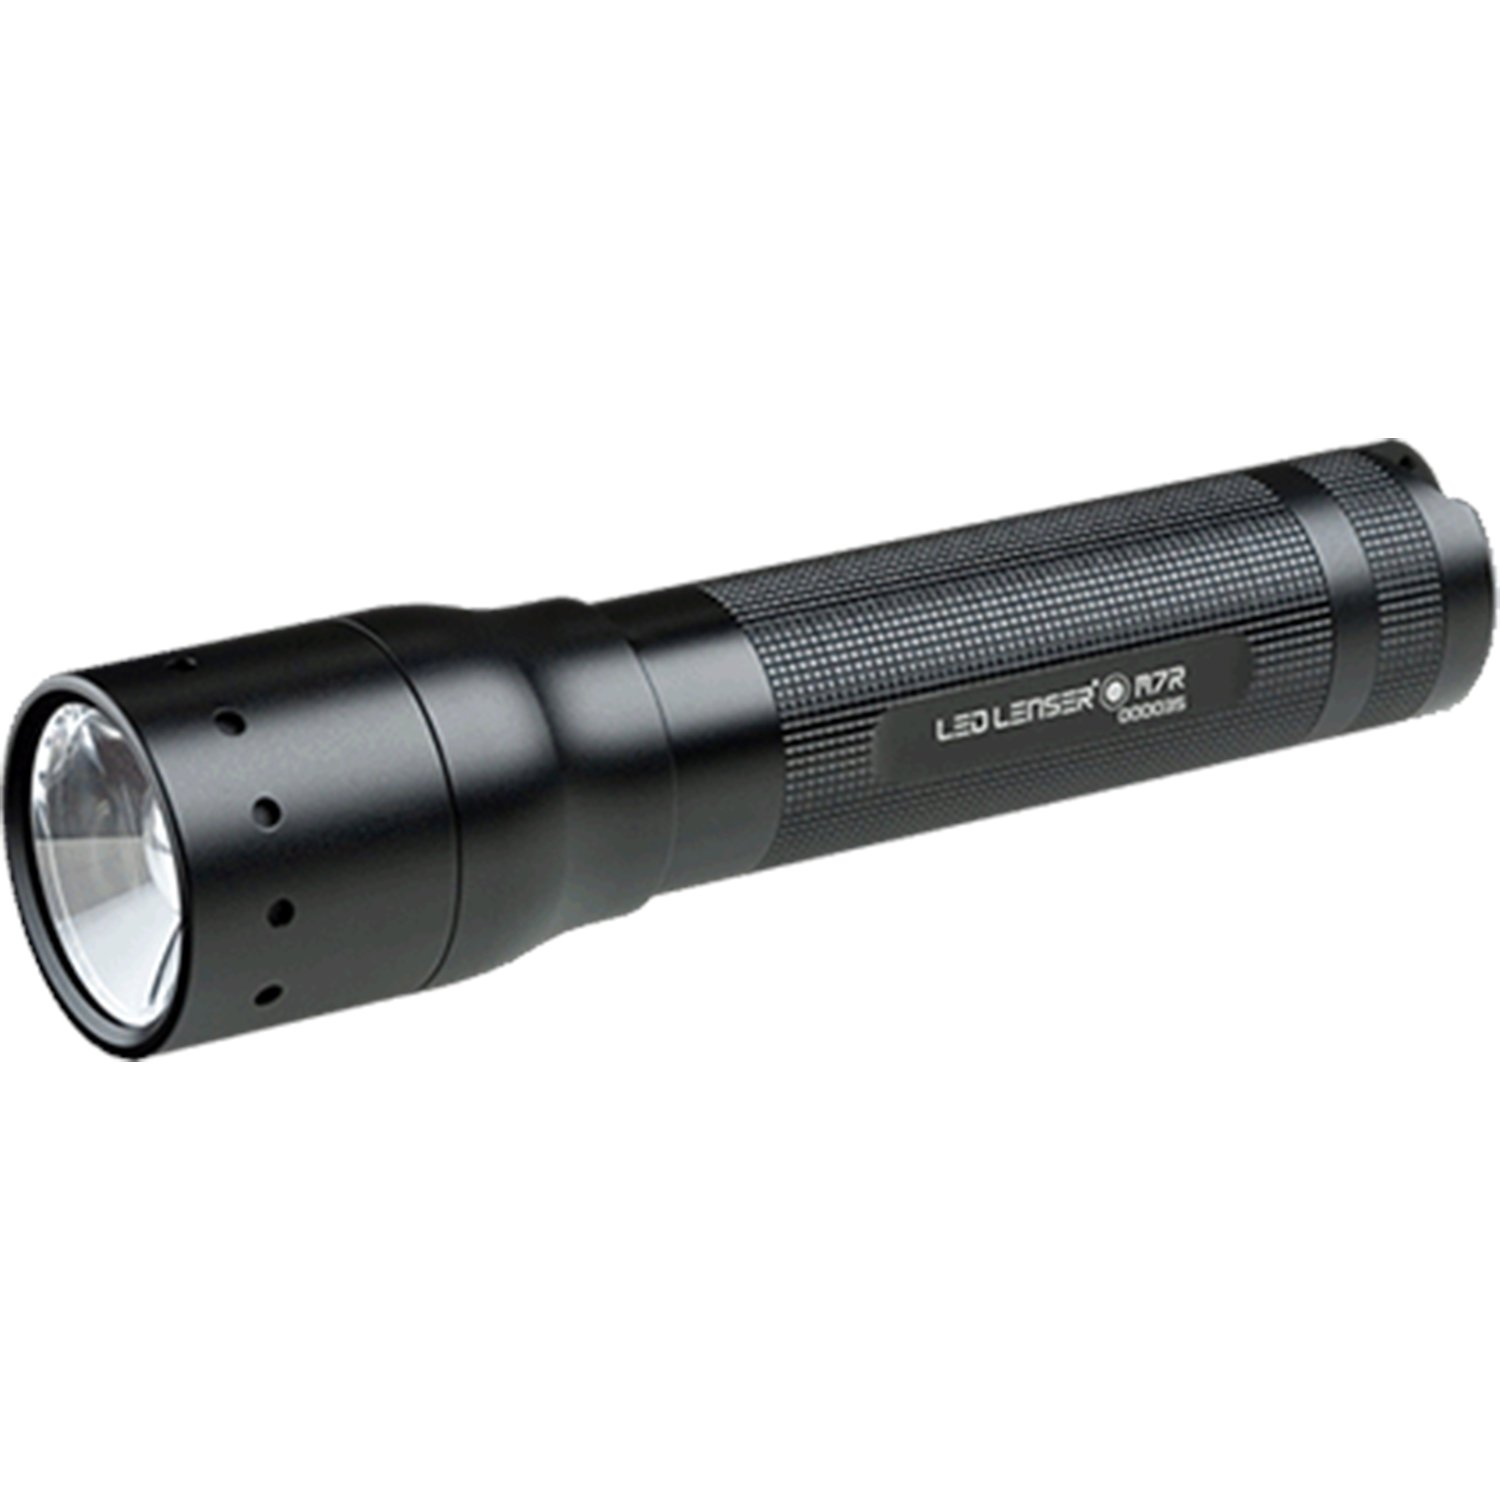 LED Lenser M7R Rechargable Flashlight A very bright high-quality LED flashlight with lots of options, and a small form factor and affordable price. Great fit for RVing, and chasing the cat when she escapes.